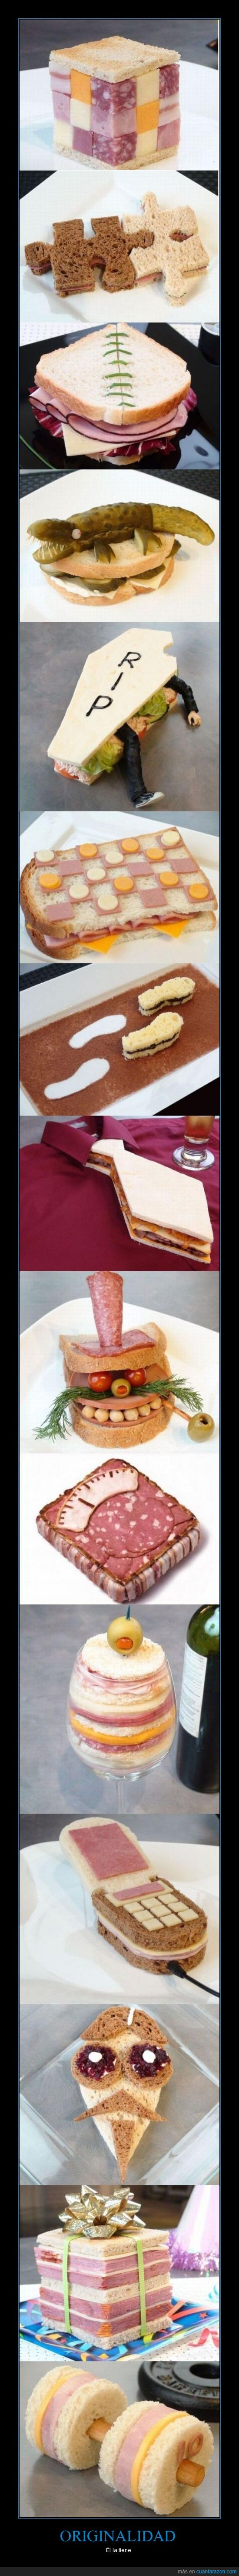 imaginacion,increible,original,sándwiches